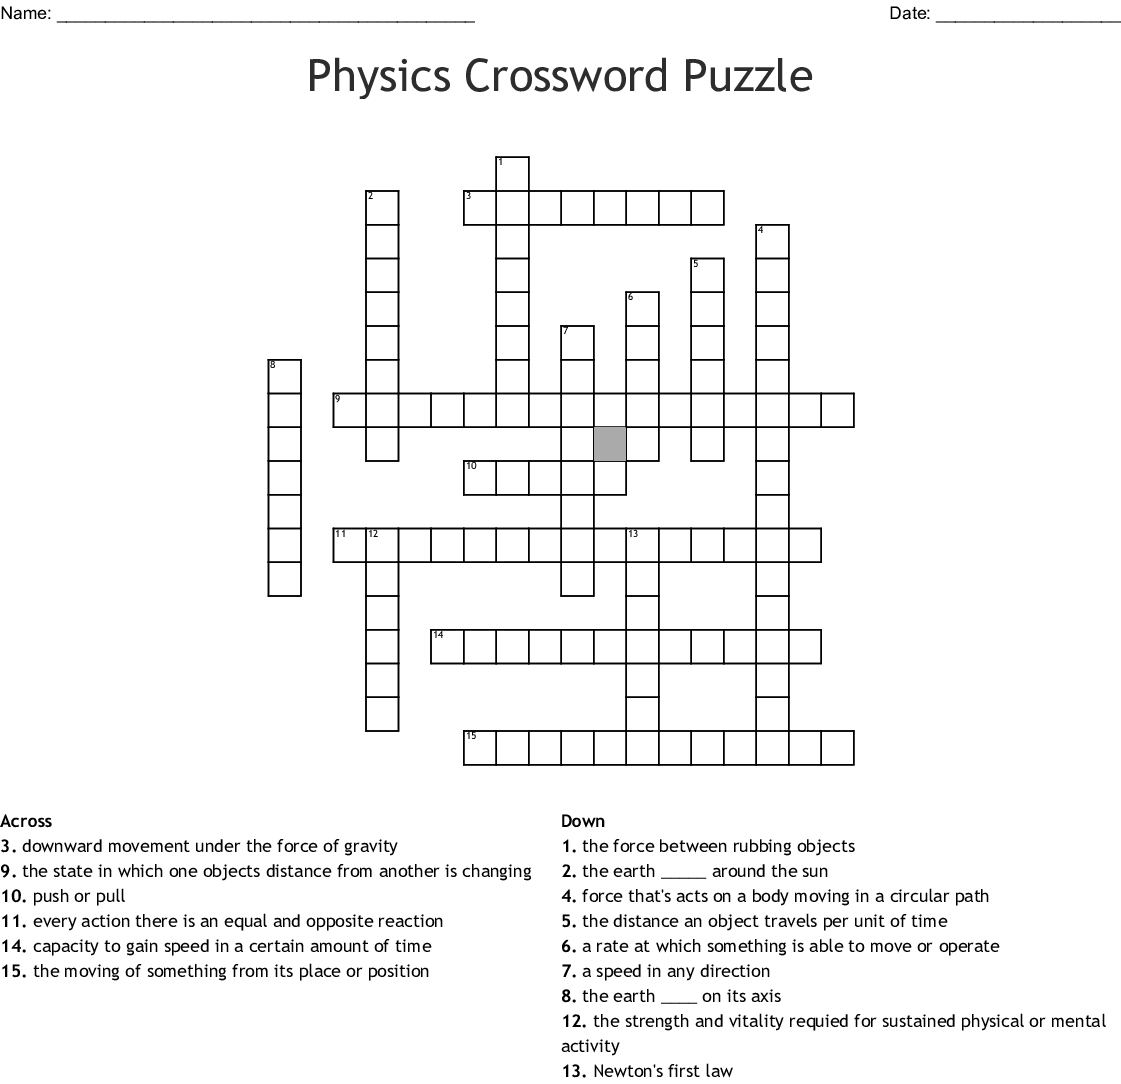 Physics Crossword Puzzle Crossword - Wordmint - Physics Crossword Puzzles Printable With Answers